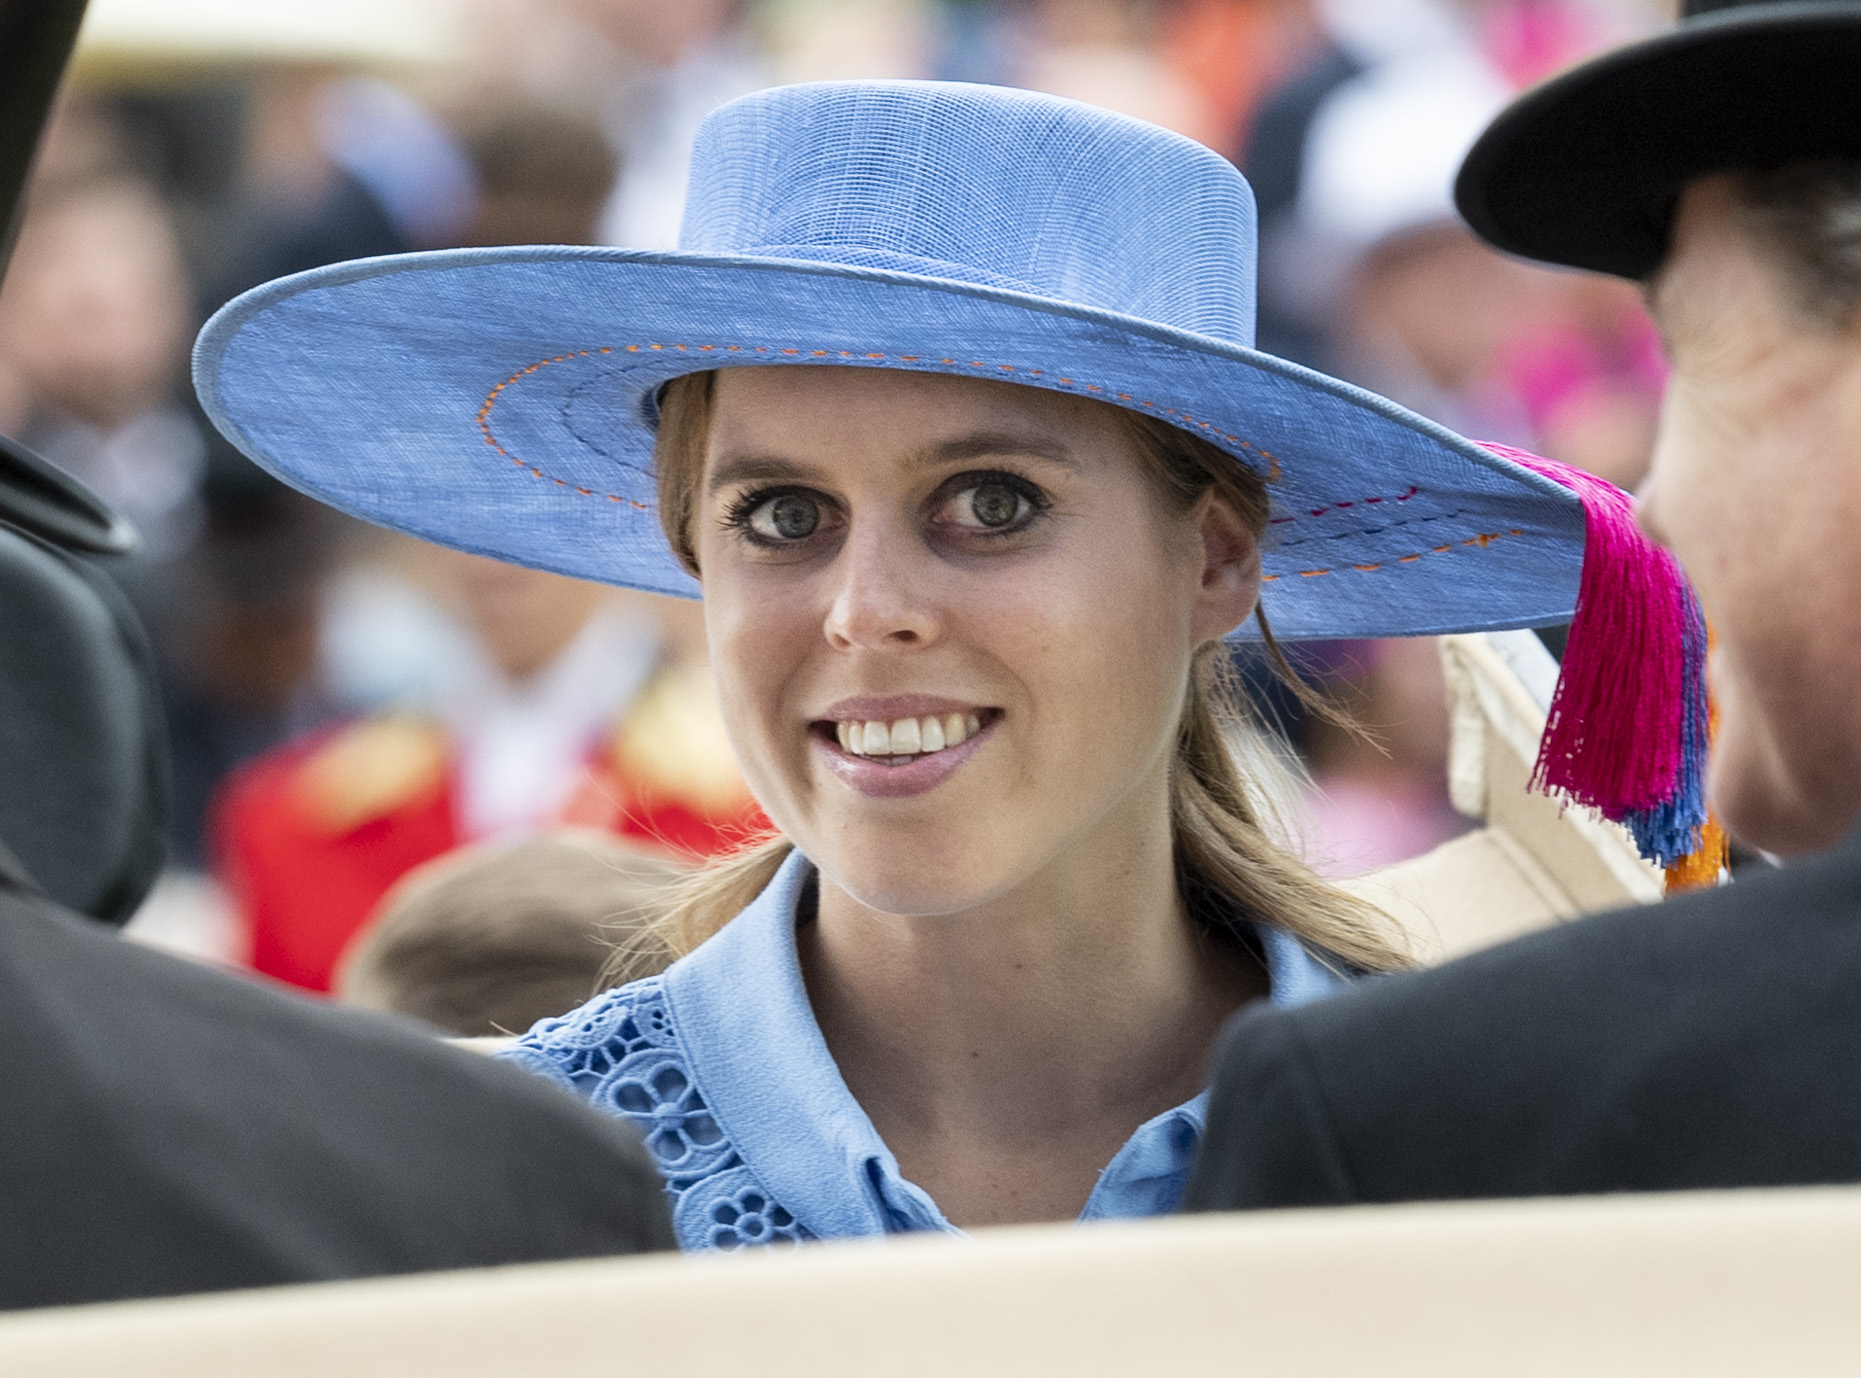 ASCOT, ENGLAND - JUNE 18: Princess Beatrice on day one of Royal Ascot at Ascot Racecourse on June 18, 2019 in Ascot, England. (Photo by Mark Cuthbert/UK Press via Getty Images)